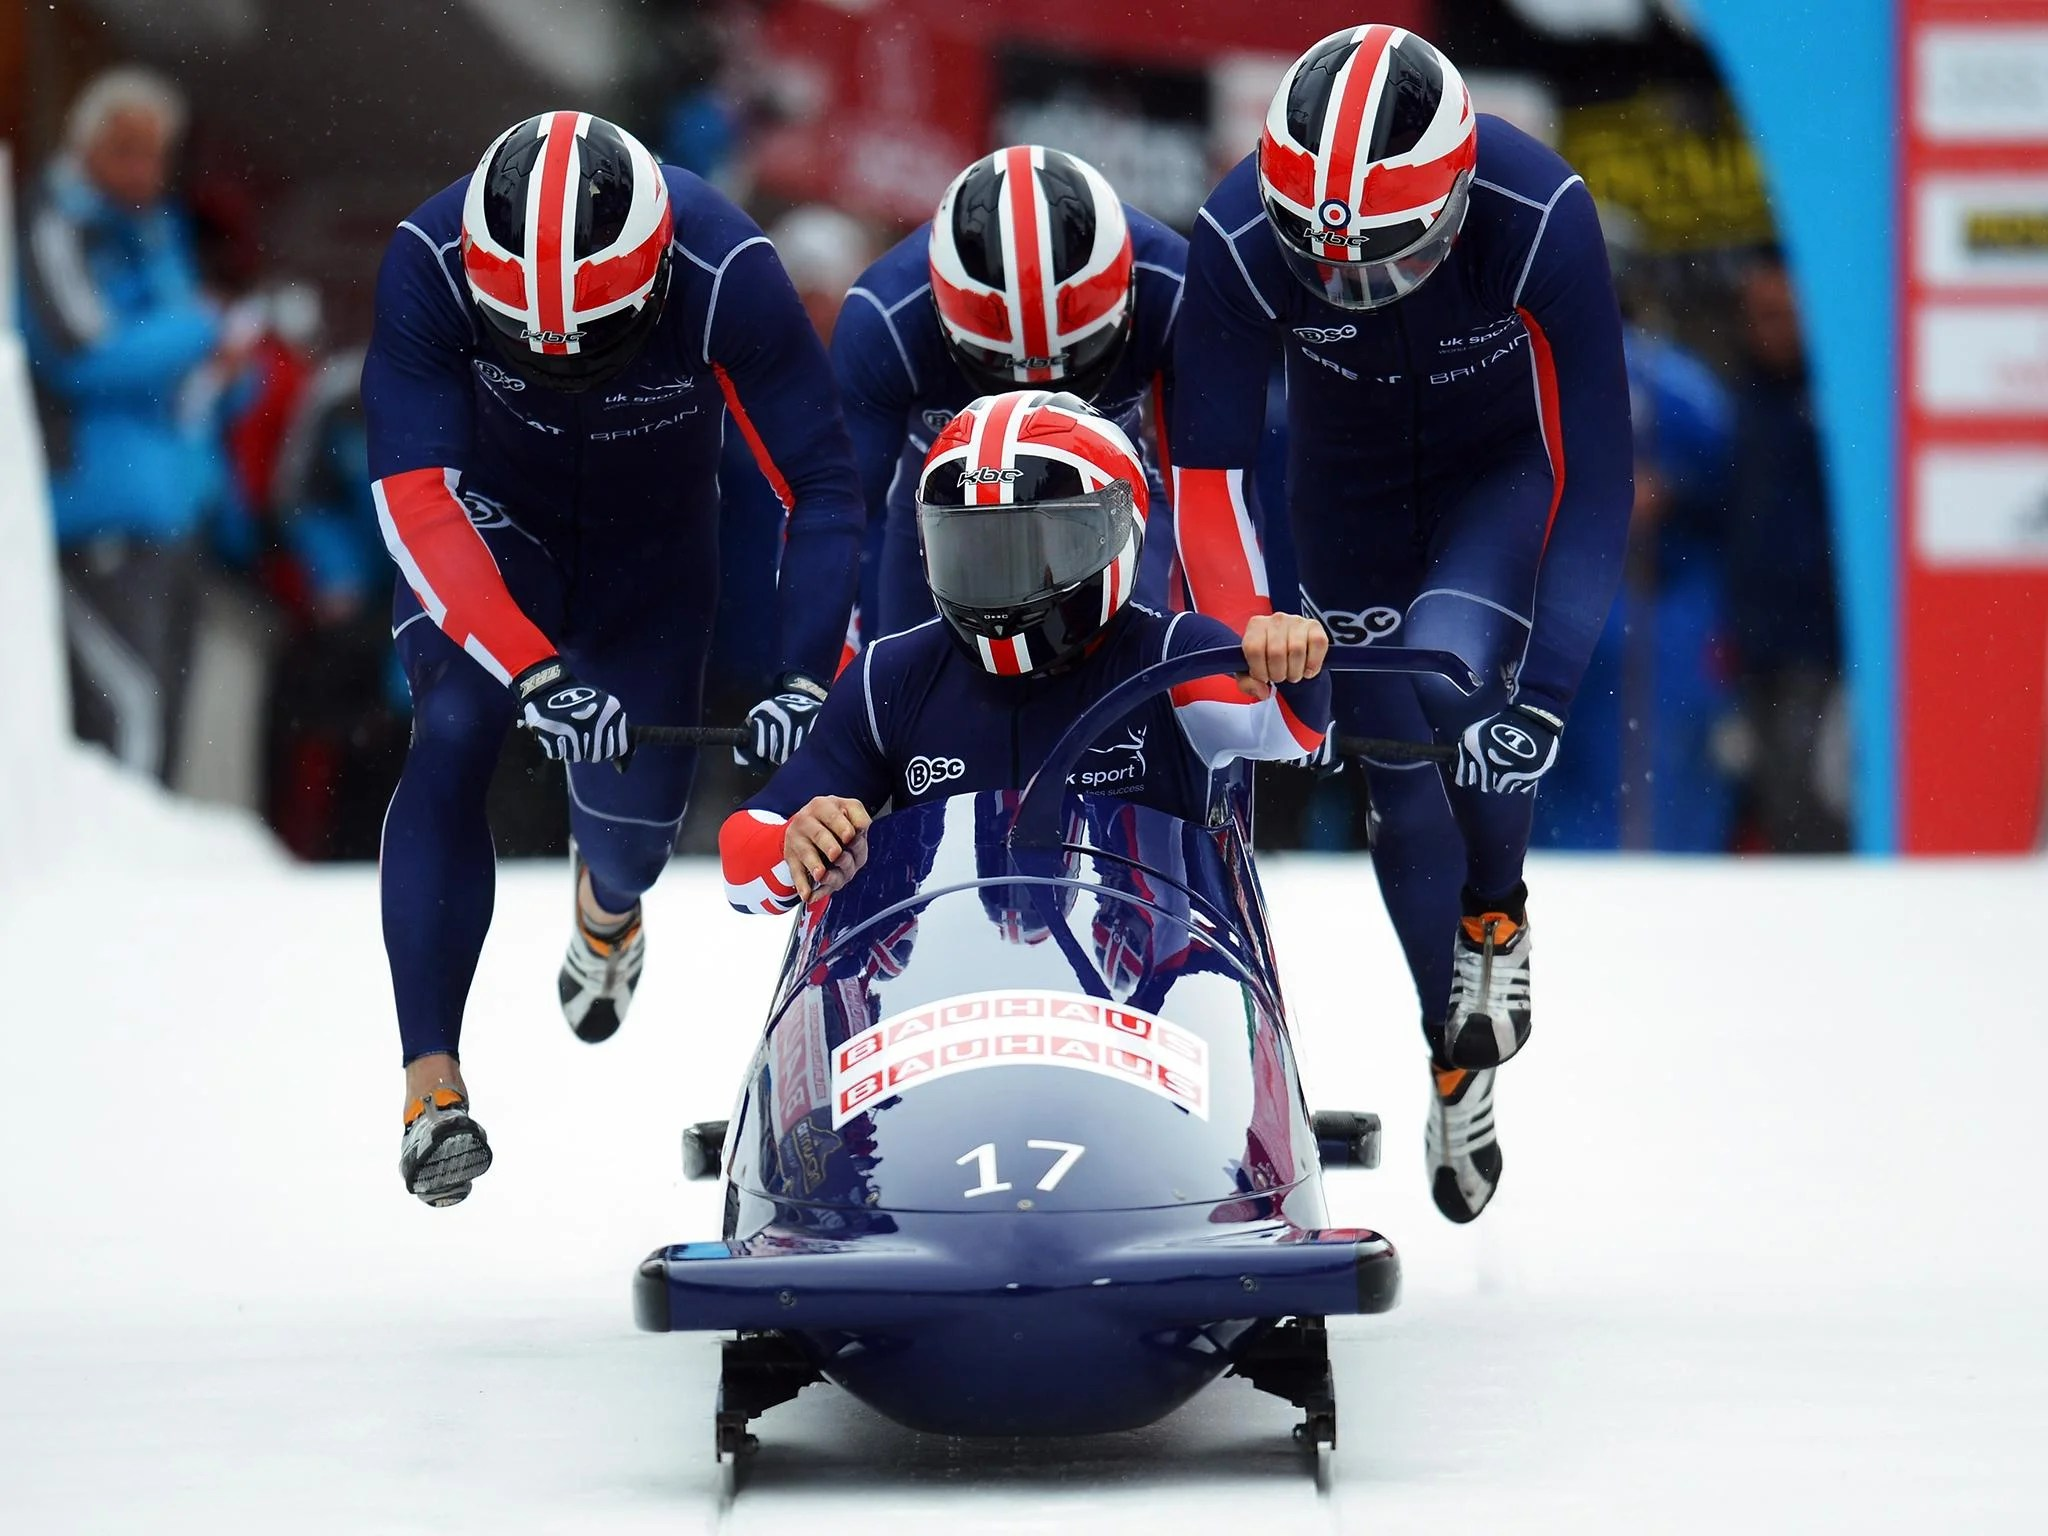 Team Gb Win Bobsleigh Bronze Medal Five Years On From